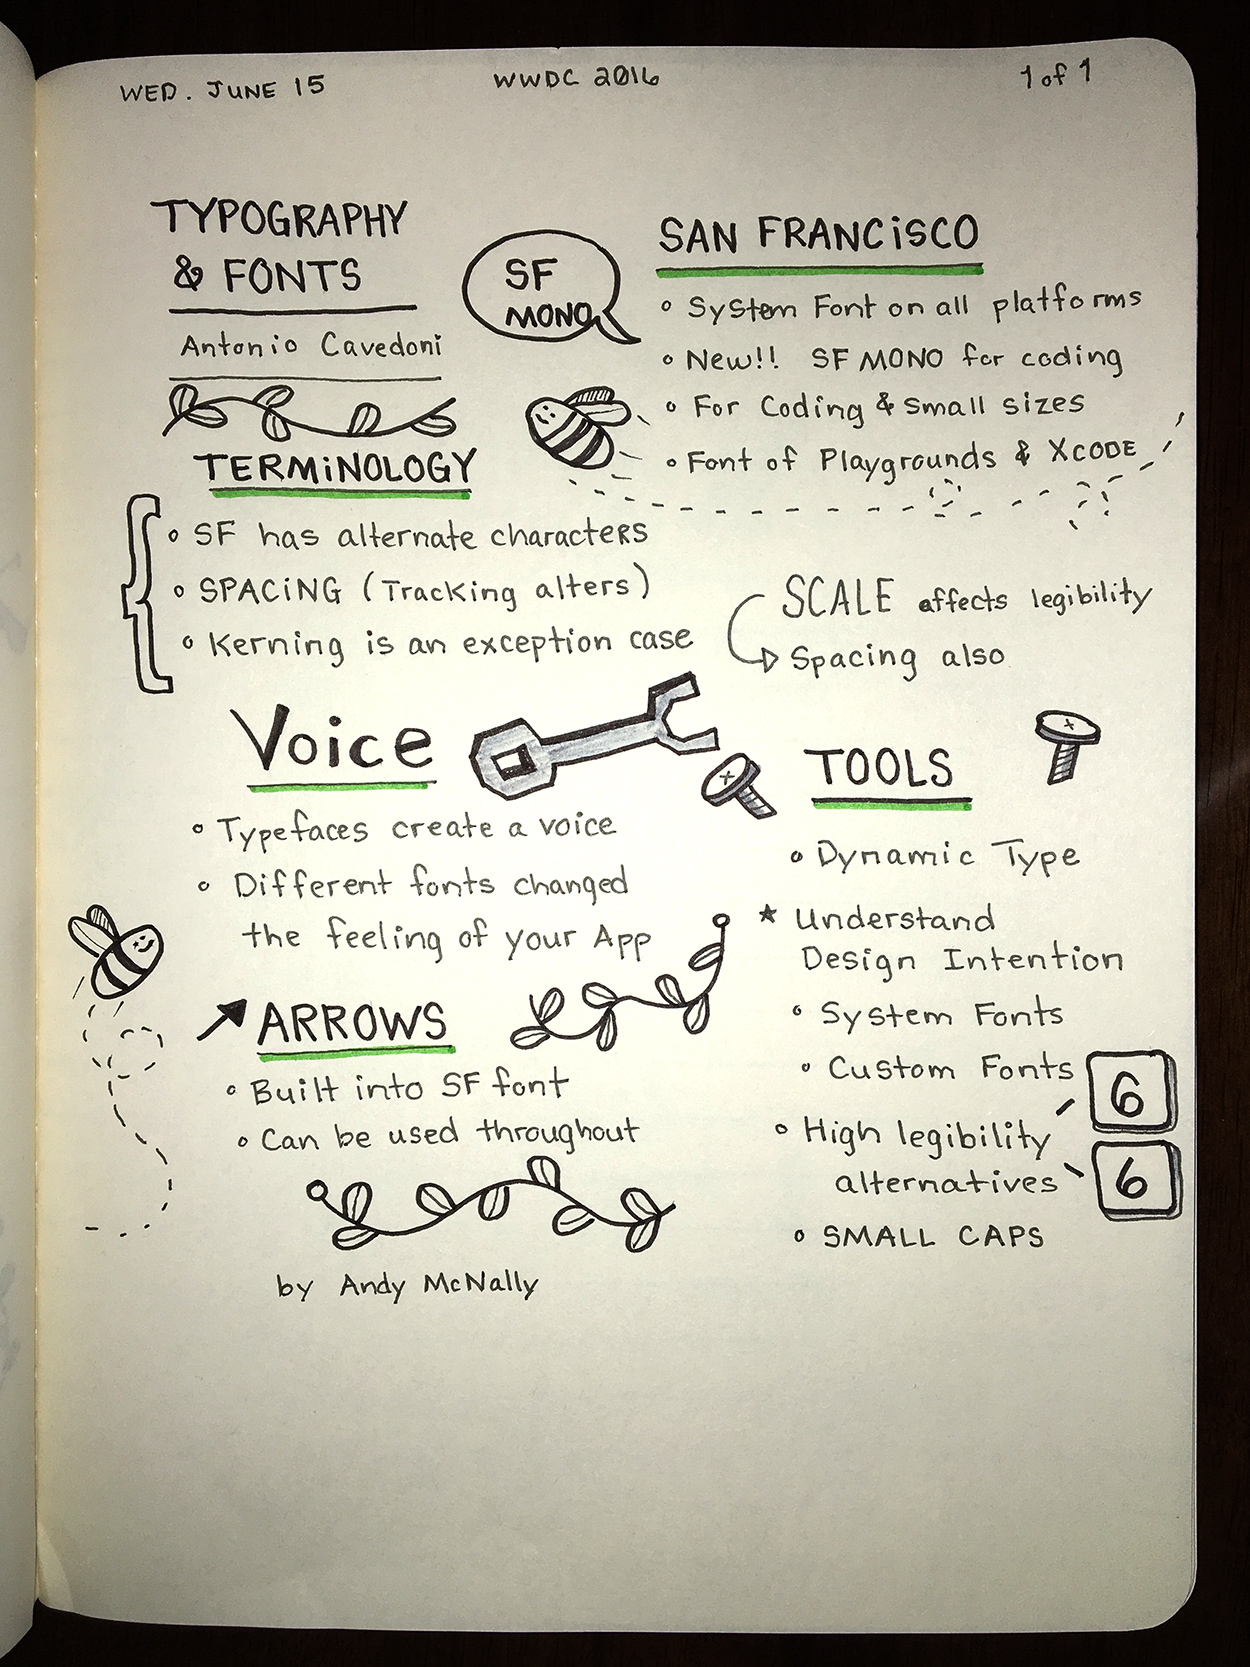 WWDC sketchnotes - Typography & Fonts